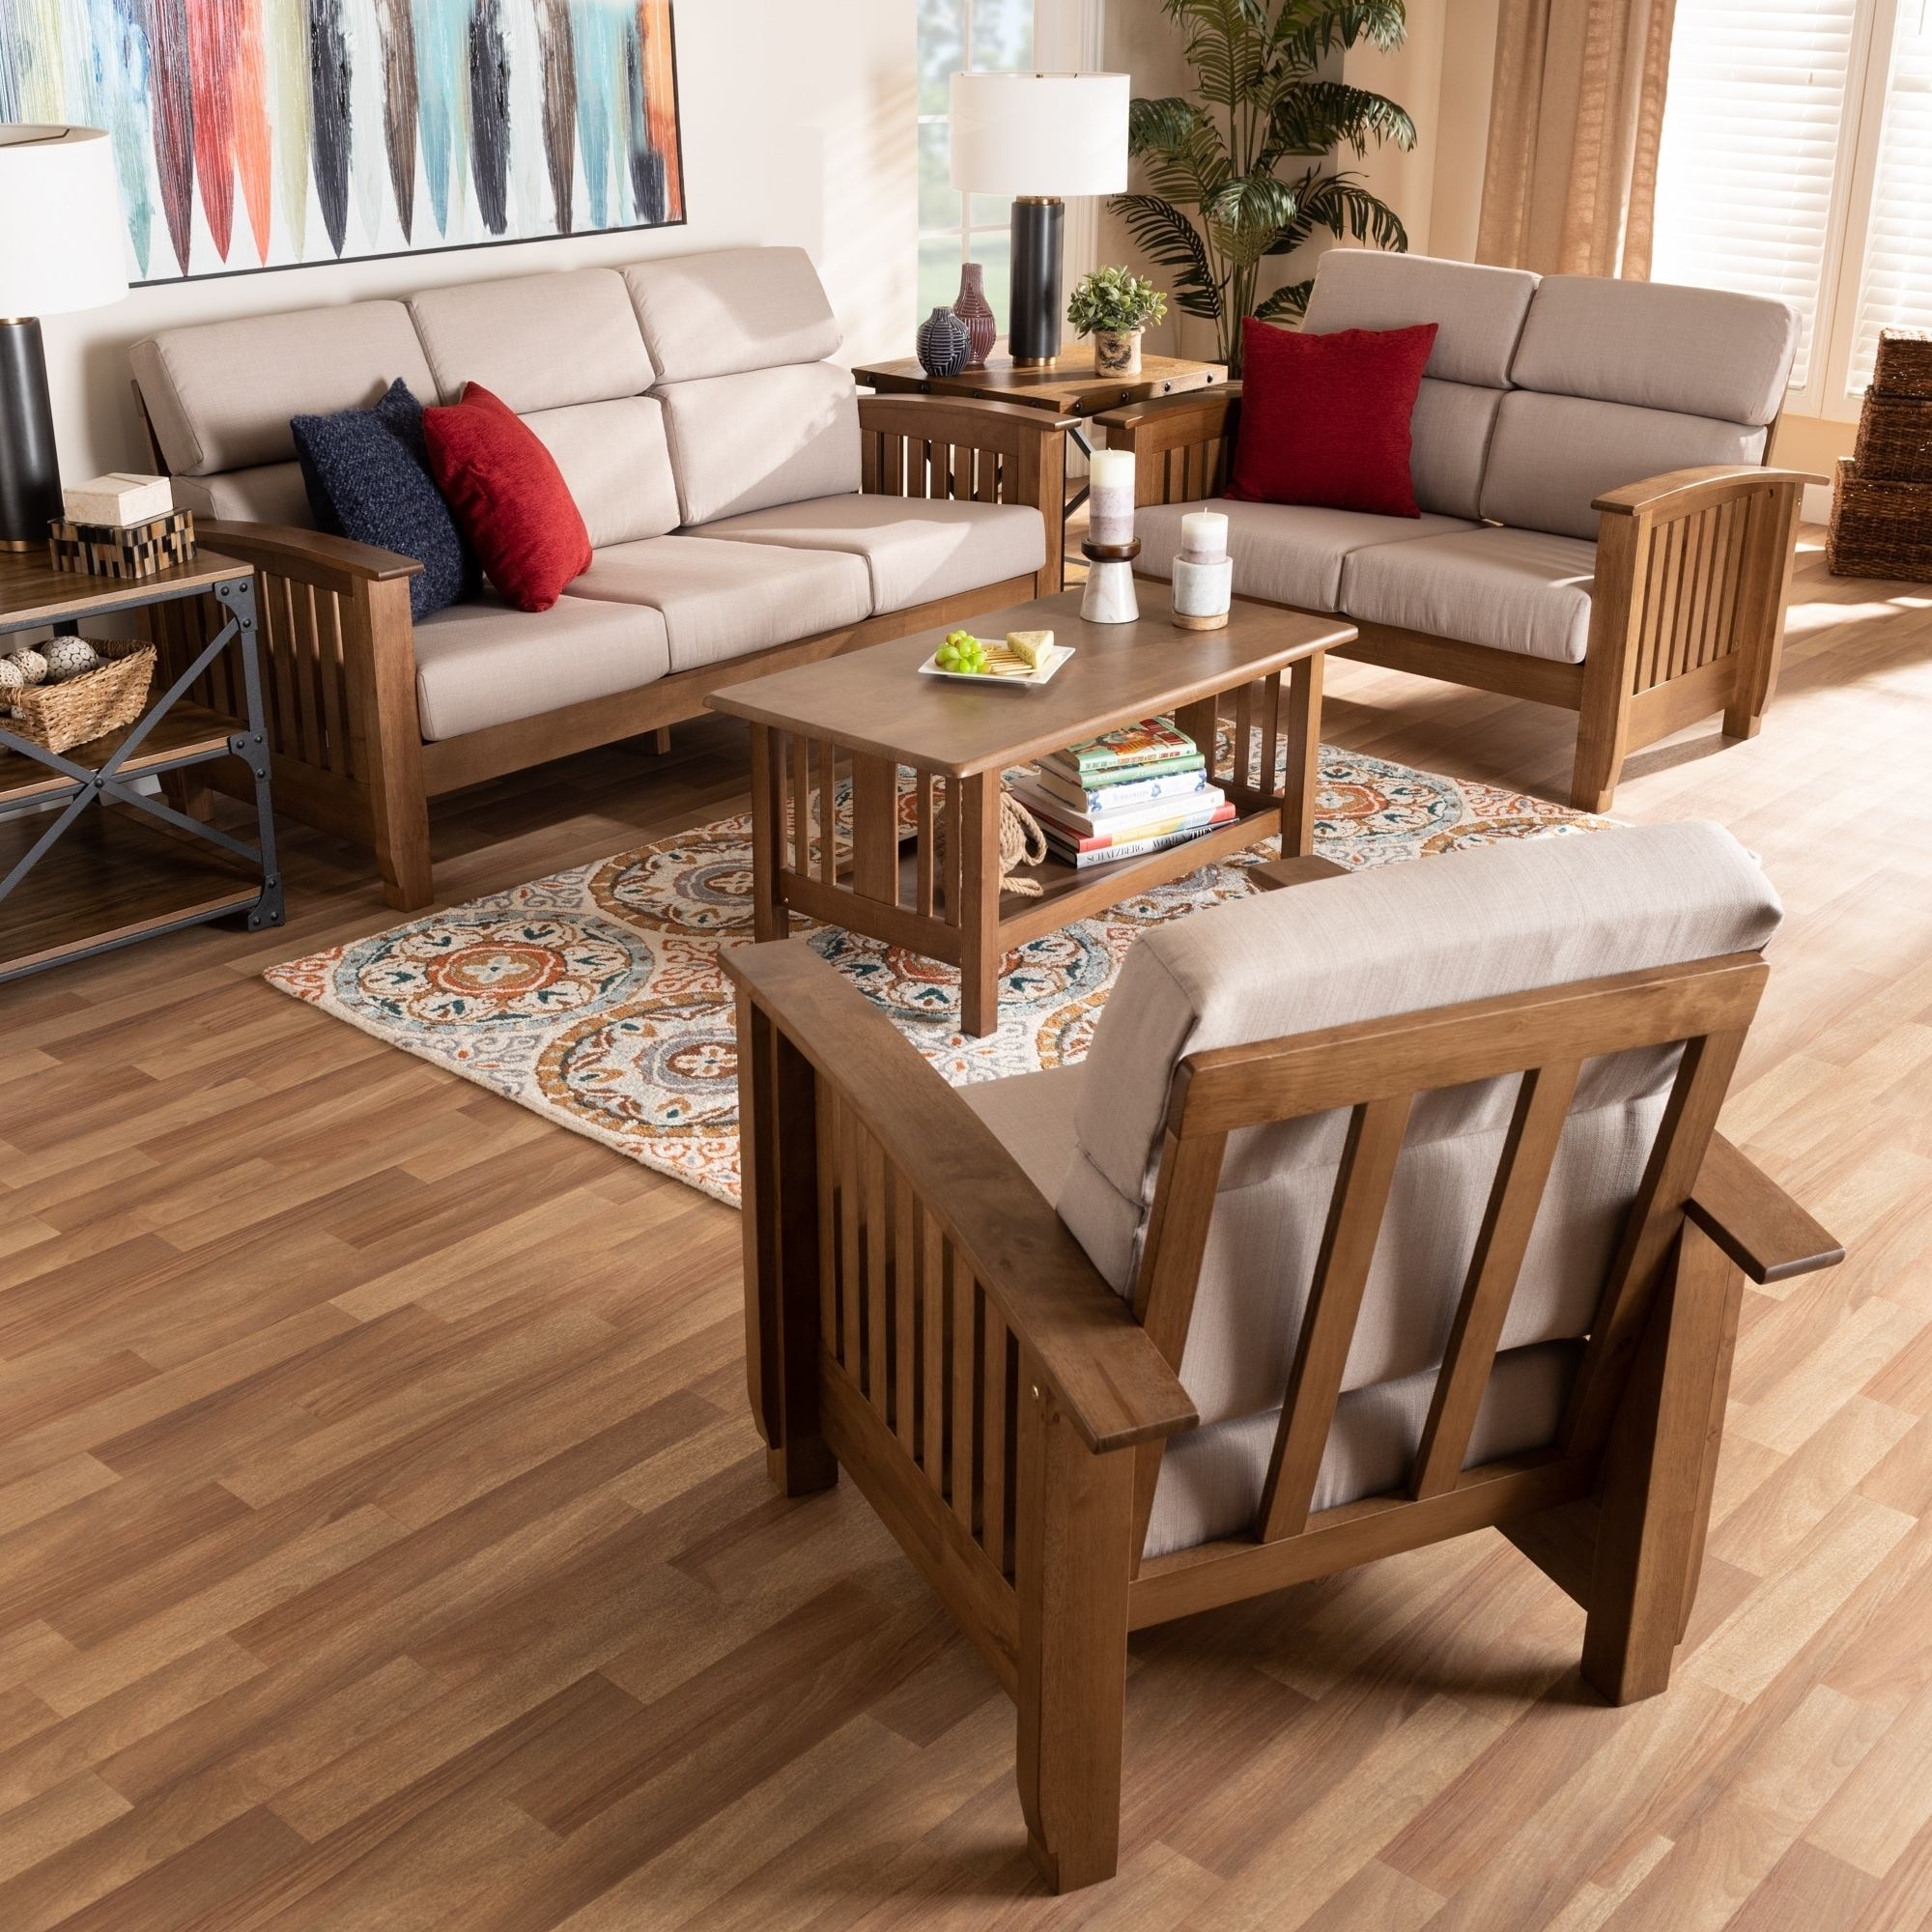 Copper Grove Shoys Mission-style 3-piece Living Room Set - On Sale - Overstock - 30116925